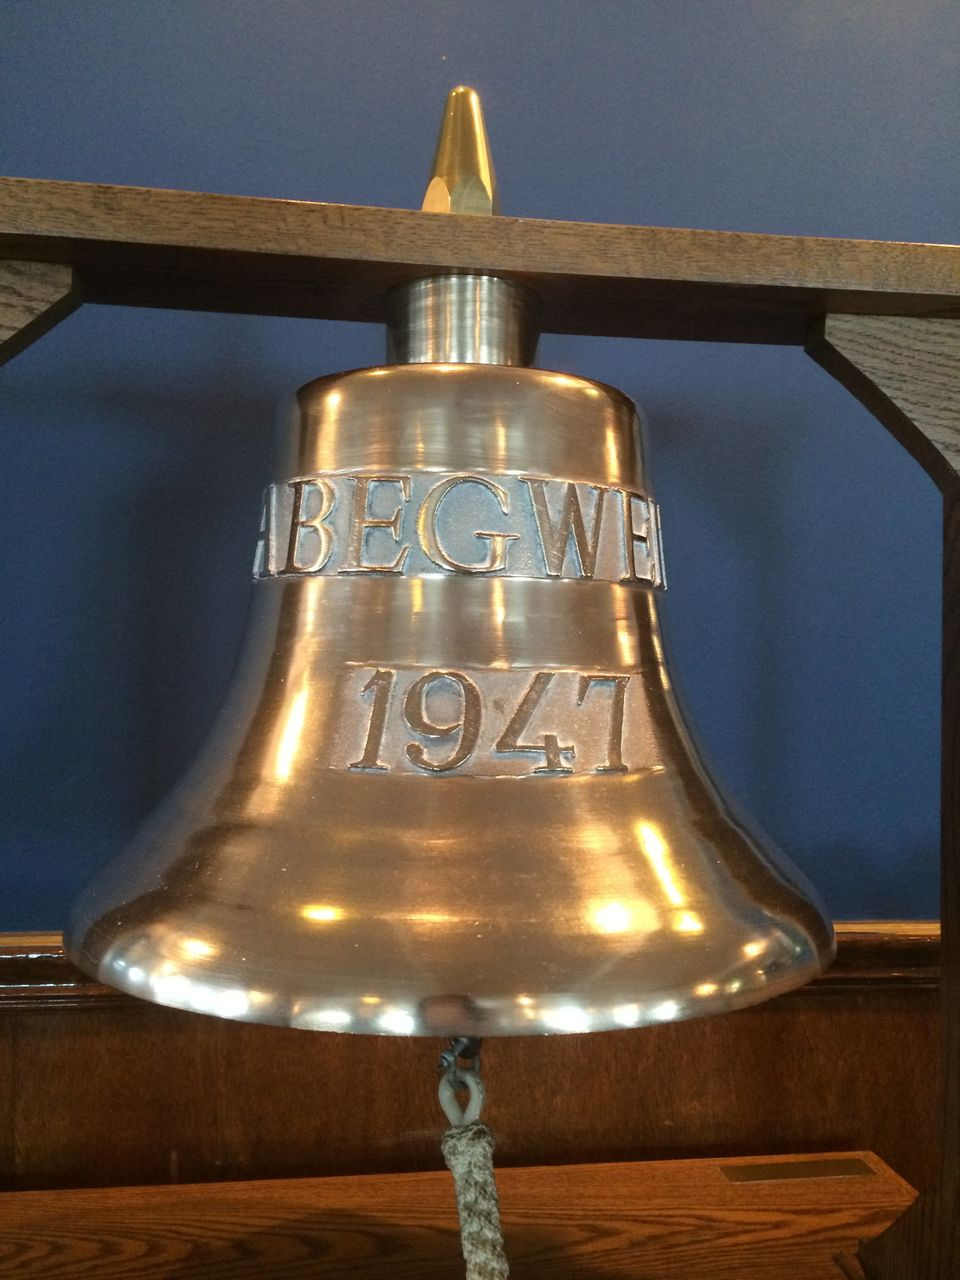 The bell of the Abegweit sits in the dining room of the floating club.  The CYC, named for the 1893 World's Columbian Exposit